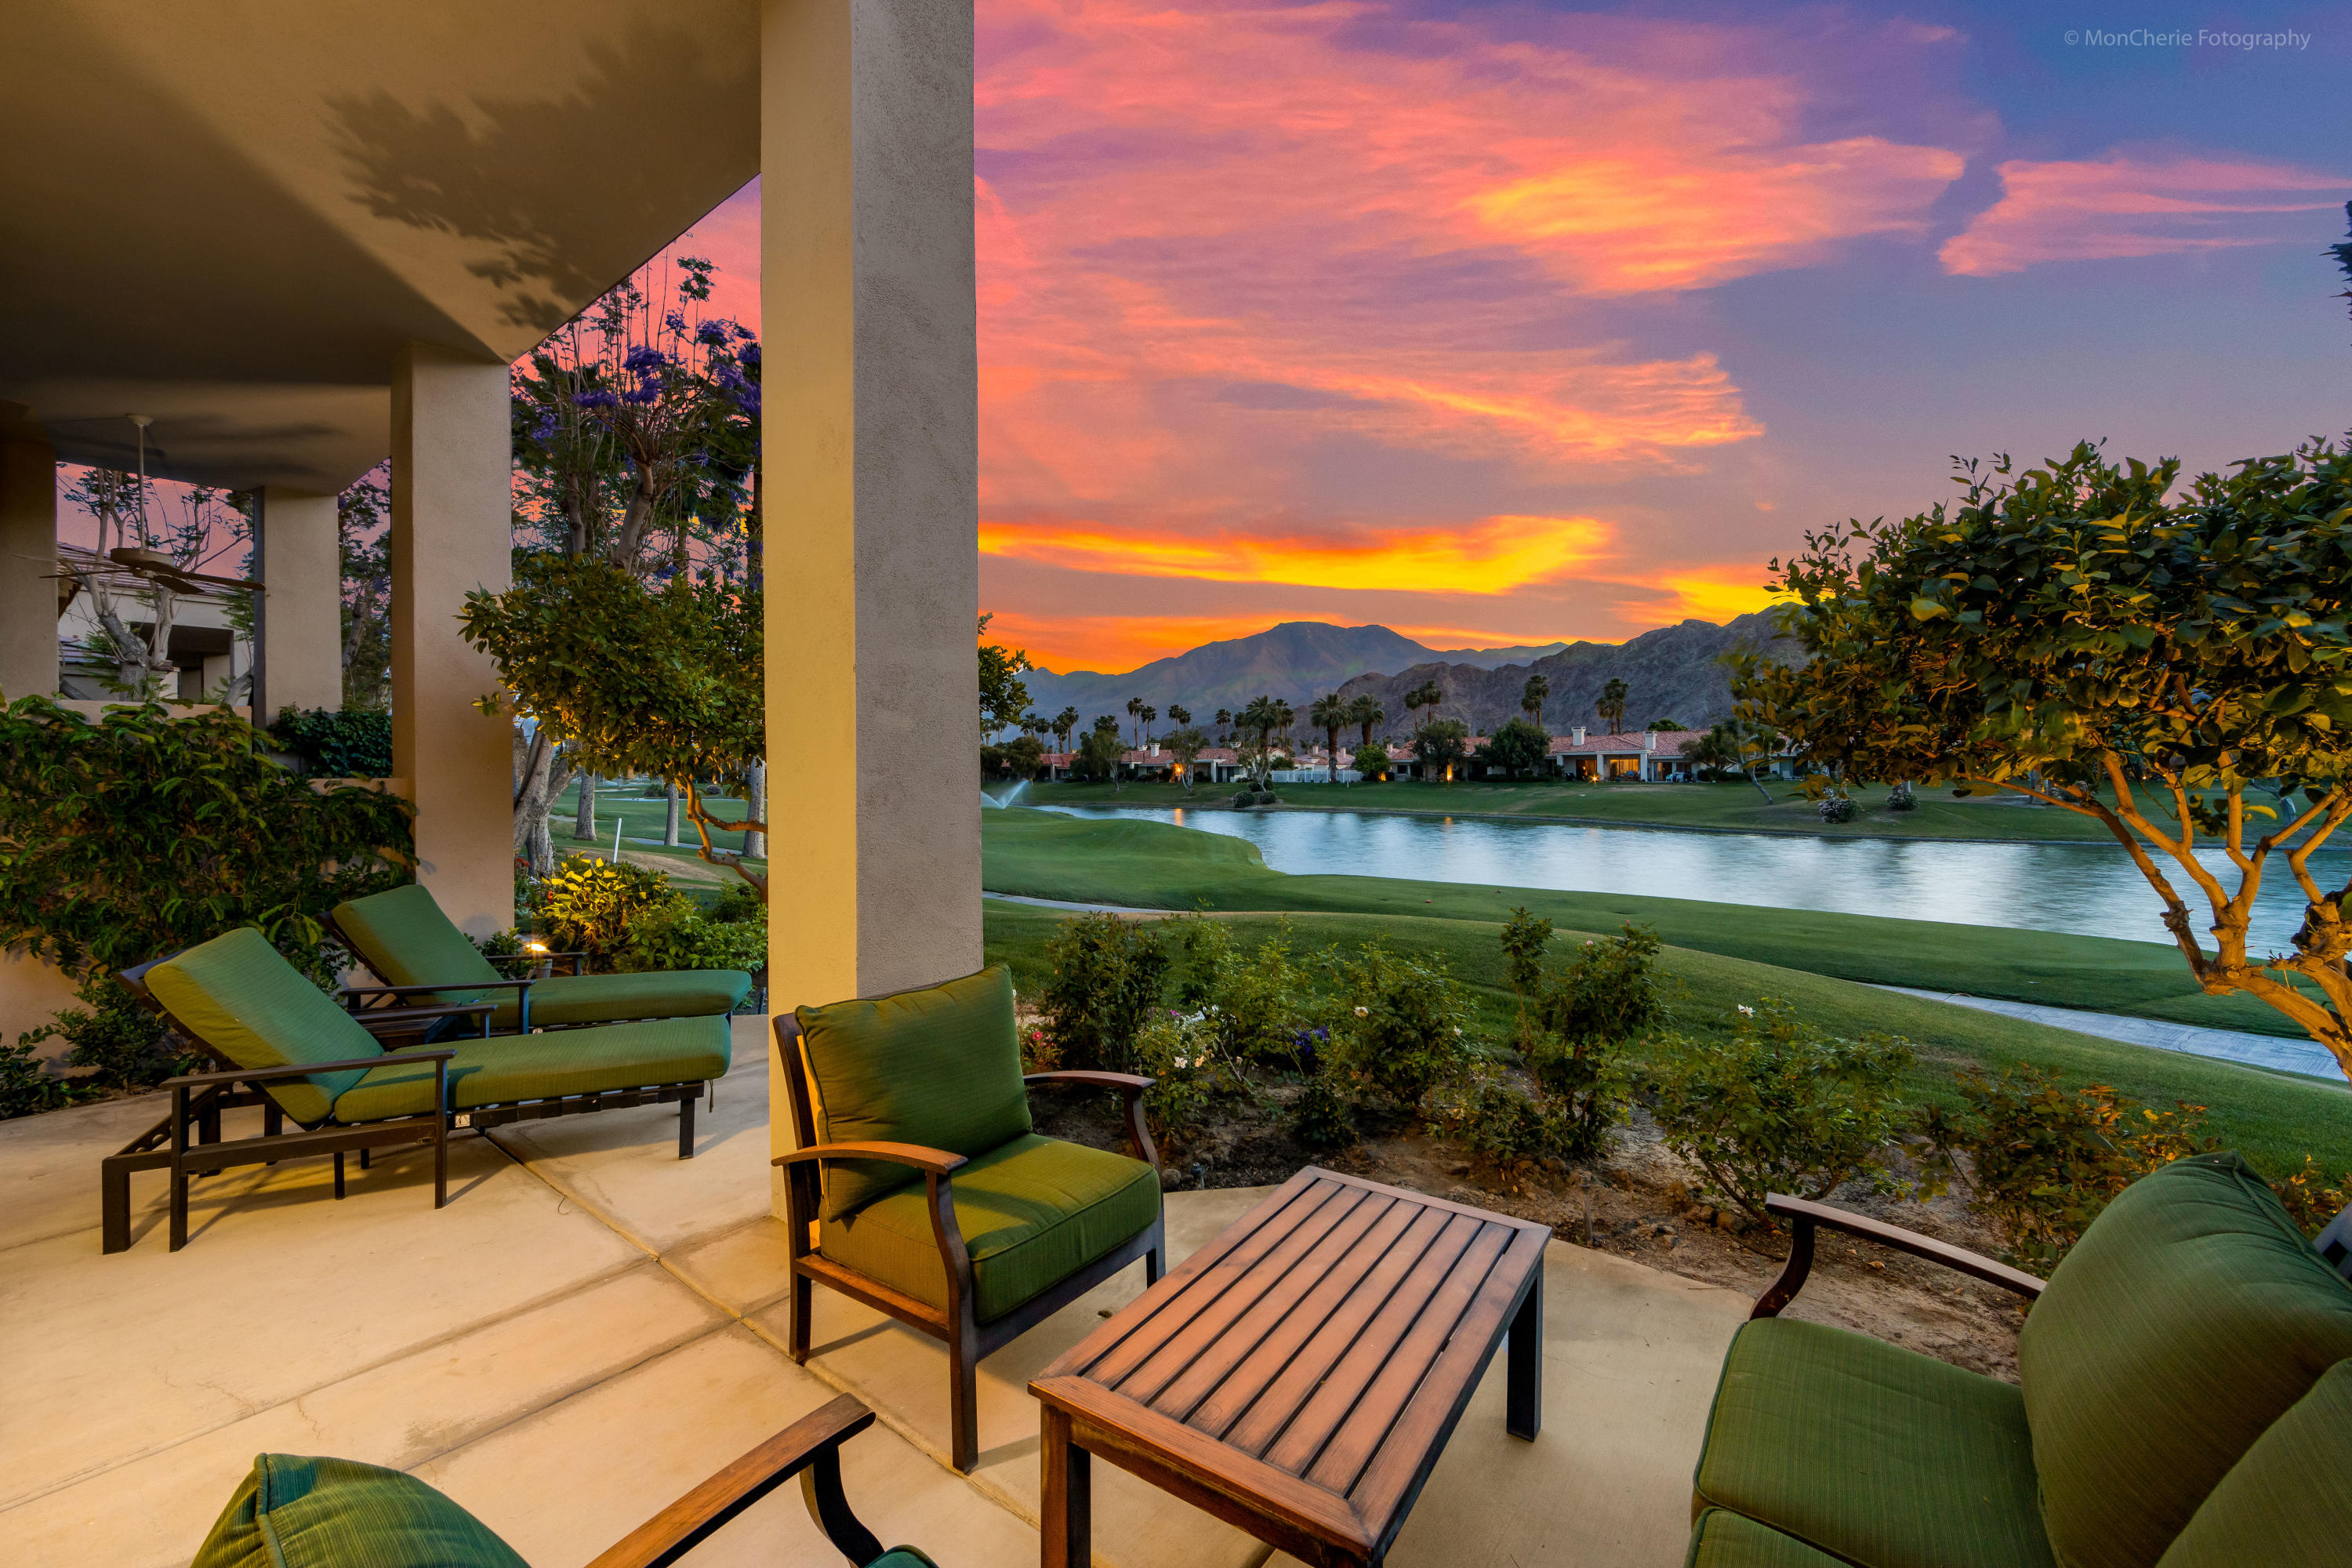 LOCATION,LOCATION,LOCATION! With Panoramic Western Views of the Majestic Santa Rosa Mountains, 7th hole of the Palmer Private Golf Course and Sparkling Lake at PGA West, The Western Home of Golf, this ideal 2 BD/2 BA, Champion One Condo has updated flooring throughout with tile and carpet, updated kitchen with stainless appliances,  gas cooktop, and updated recessed lighting, With Plantation Shutters throughout, Great Room with high ceilings ,comfortable Dining Room area, this has it all. Enjoy a spectacular Desert sunset or sunrise on your spacious rear patio, which is just steps away from a pristine community pool for your enjoyment. HOA's include maintenance on building and grounds, all landscaping in front, back, side, and courtyards, irrigation water and equipment, exterior paint, roof, earthquake insurance, cable, internet, trash, and 24 hour guarded gate and security. Offered Turnkey Furnished per Written Inventory